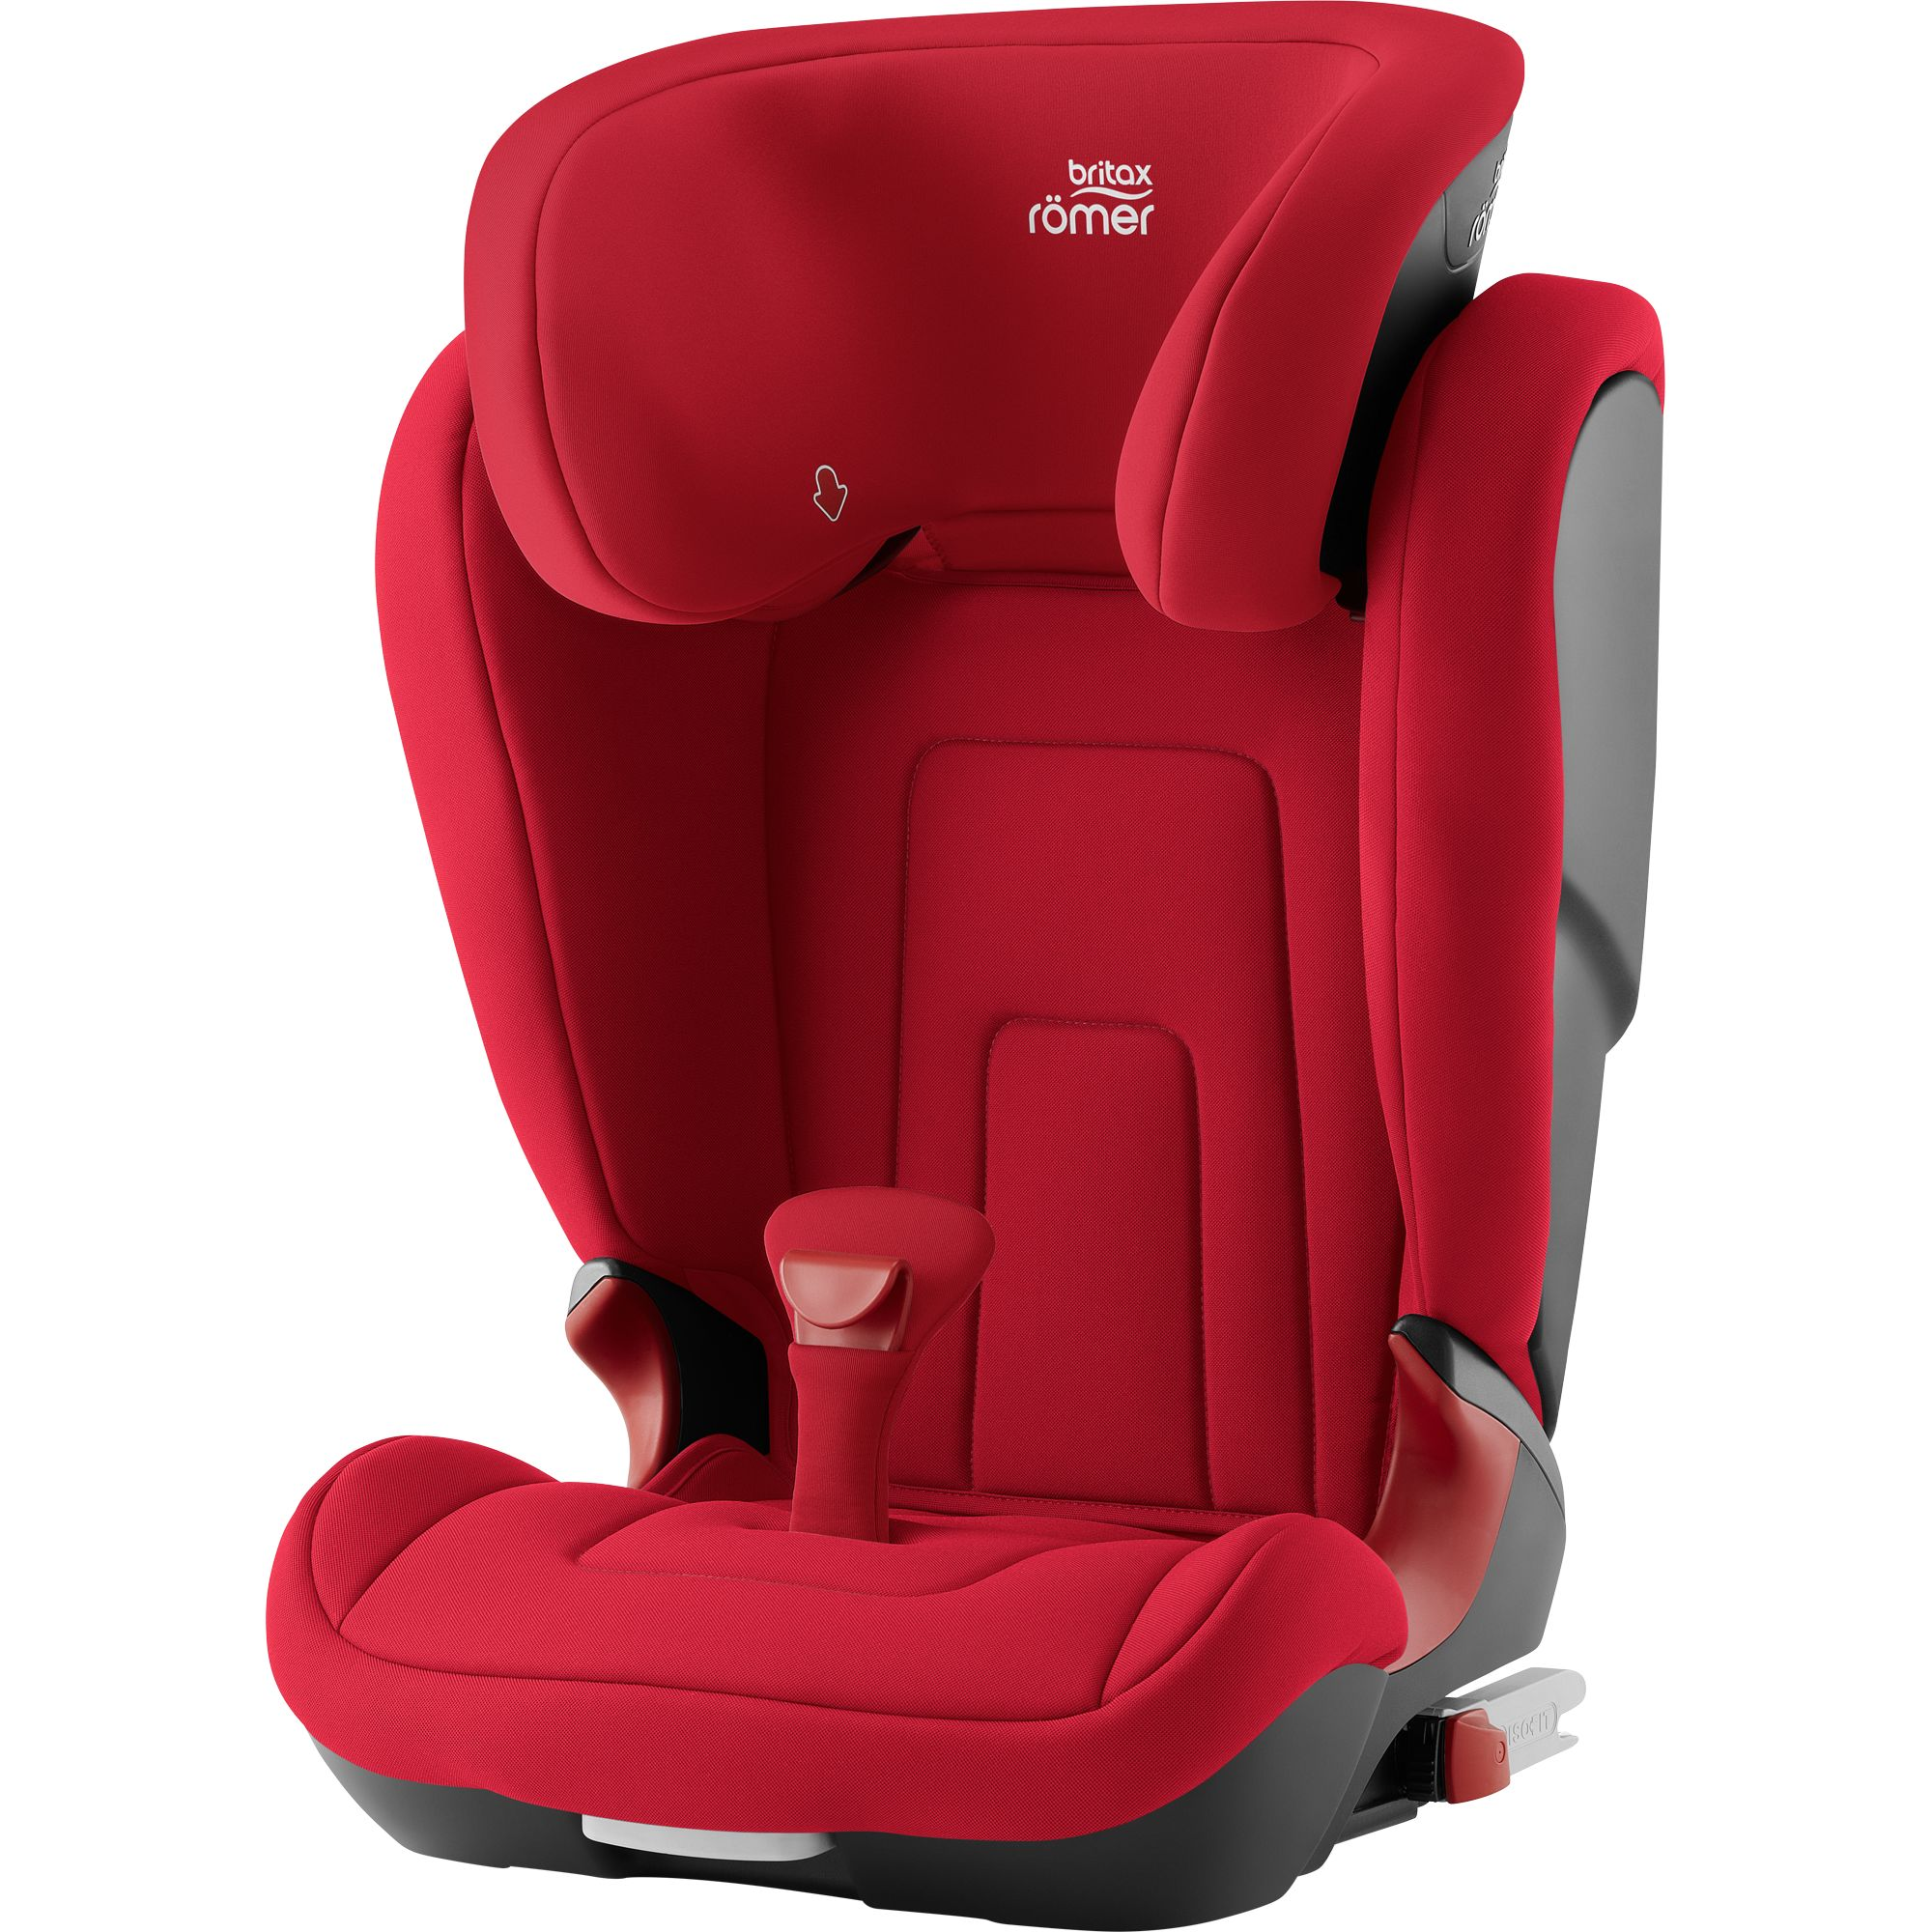 ROMER Kidfix 2 R Fire Red 2021